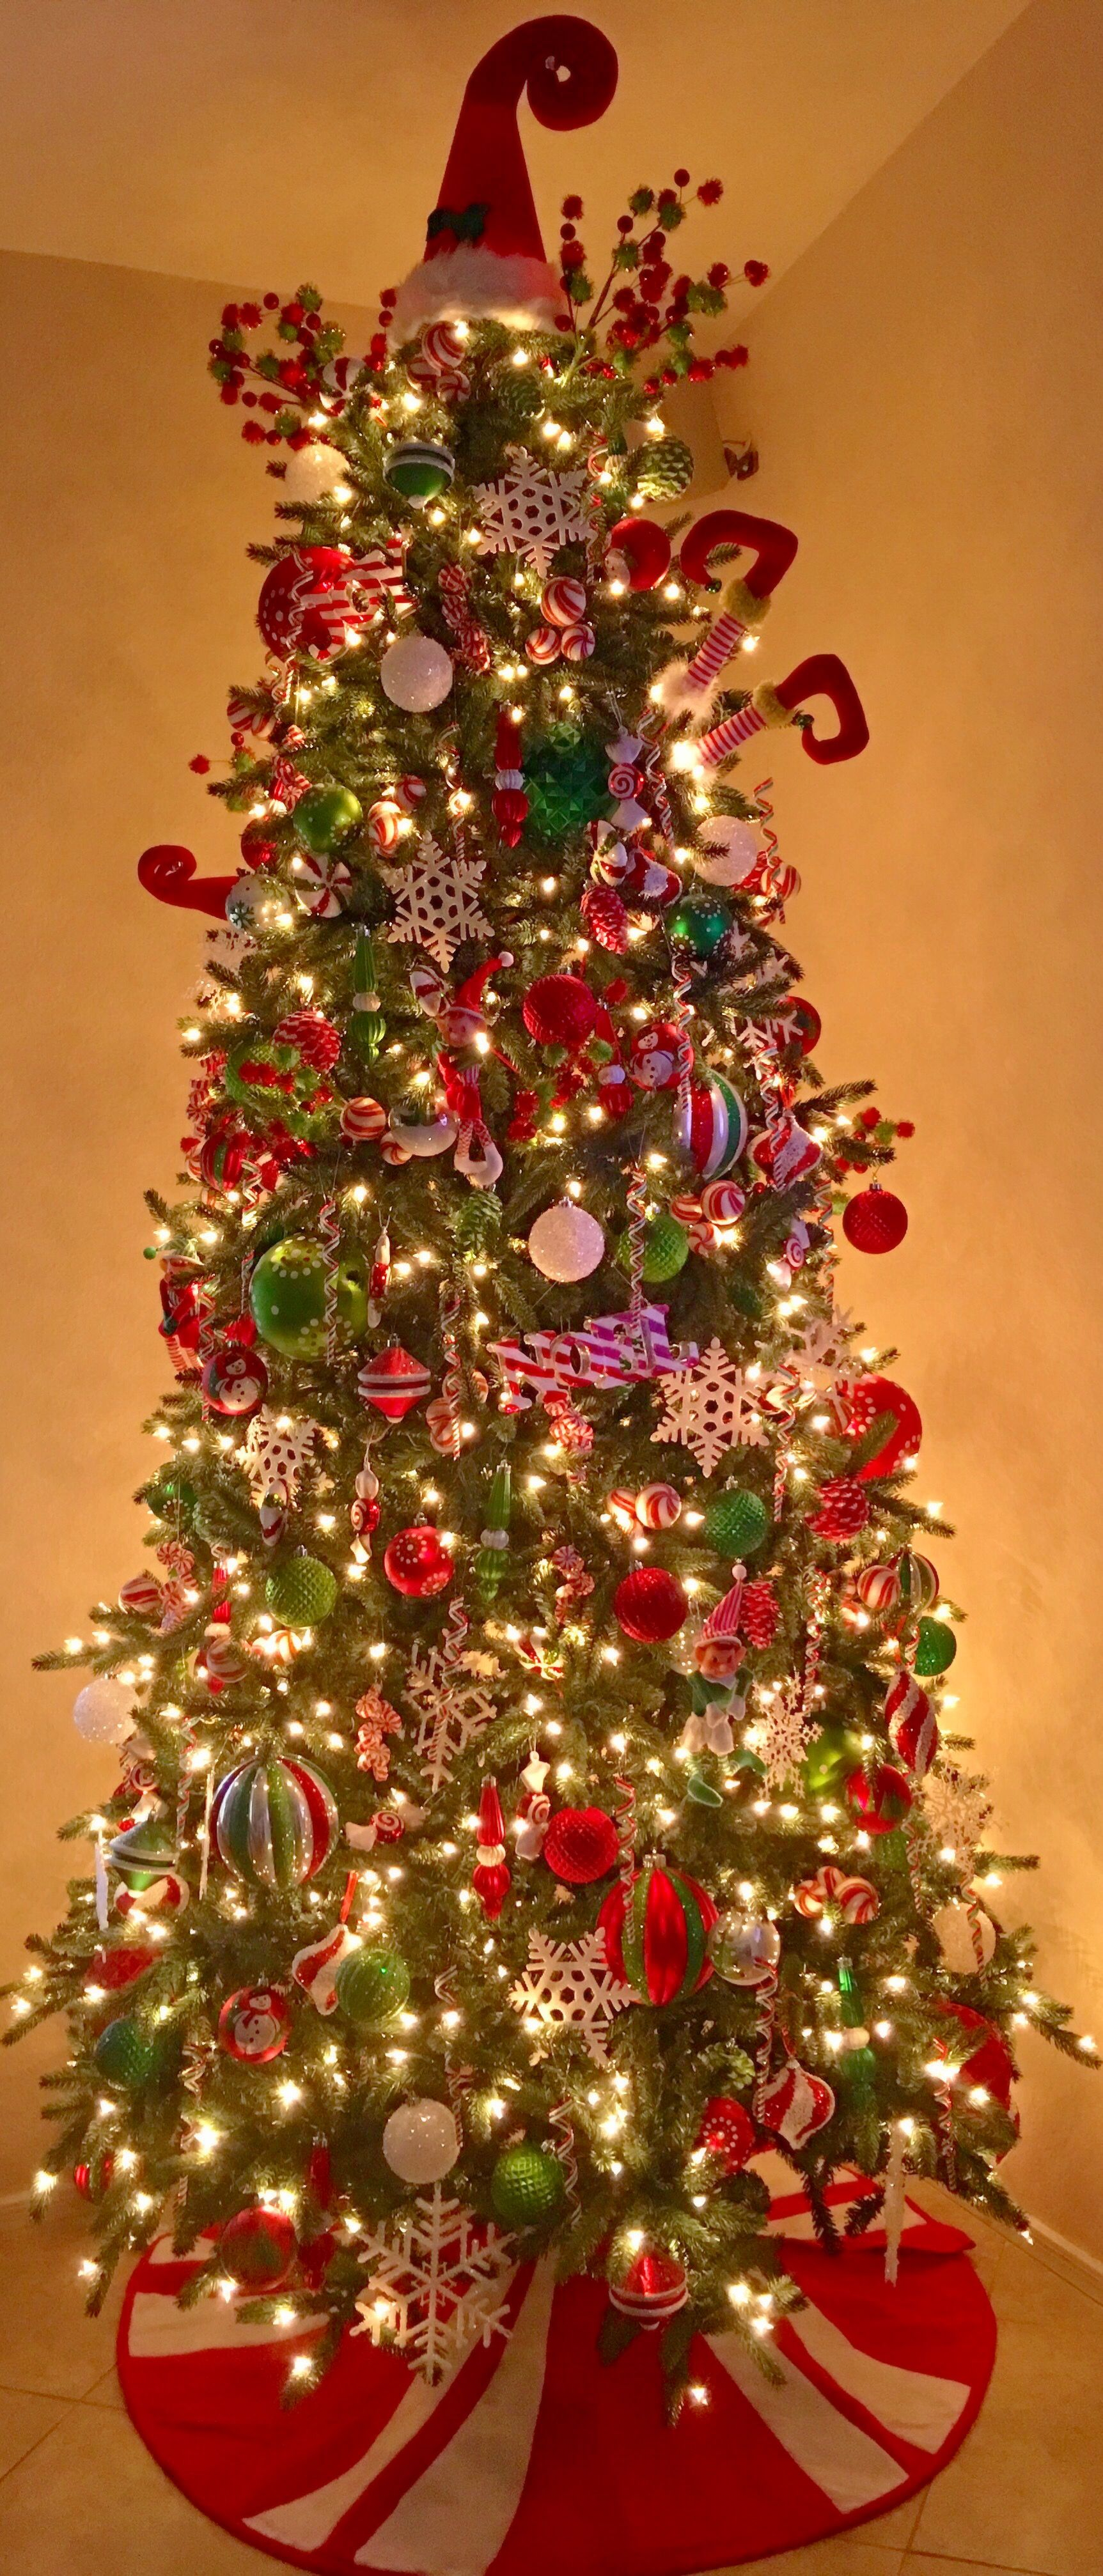 Christmas Tree 2016 Whimsical Tree Sweet Holiday Pier One Hobby Lobby Elf Tree Whimsical Christmas Trees Hobby Lobby Christmas Trees Candy Christmas Tree